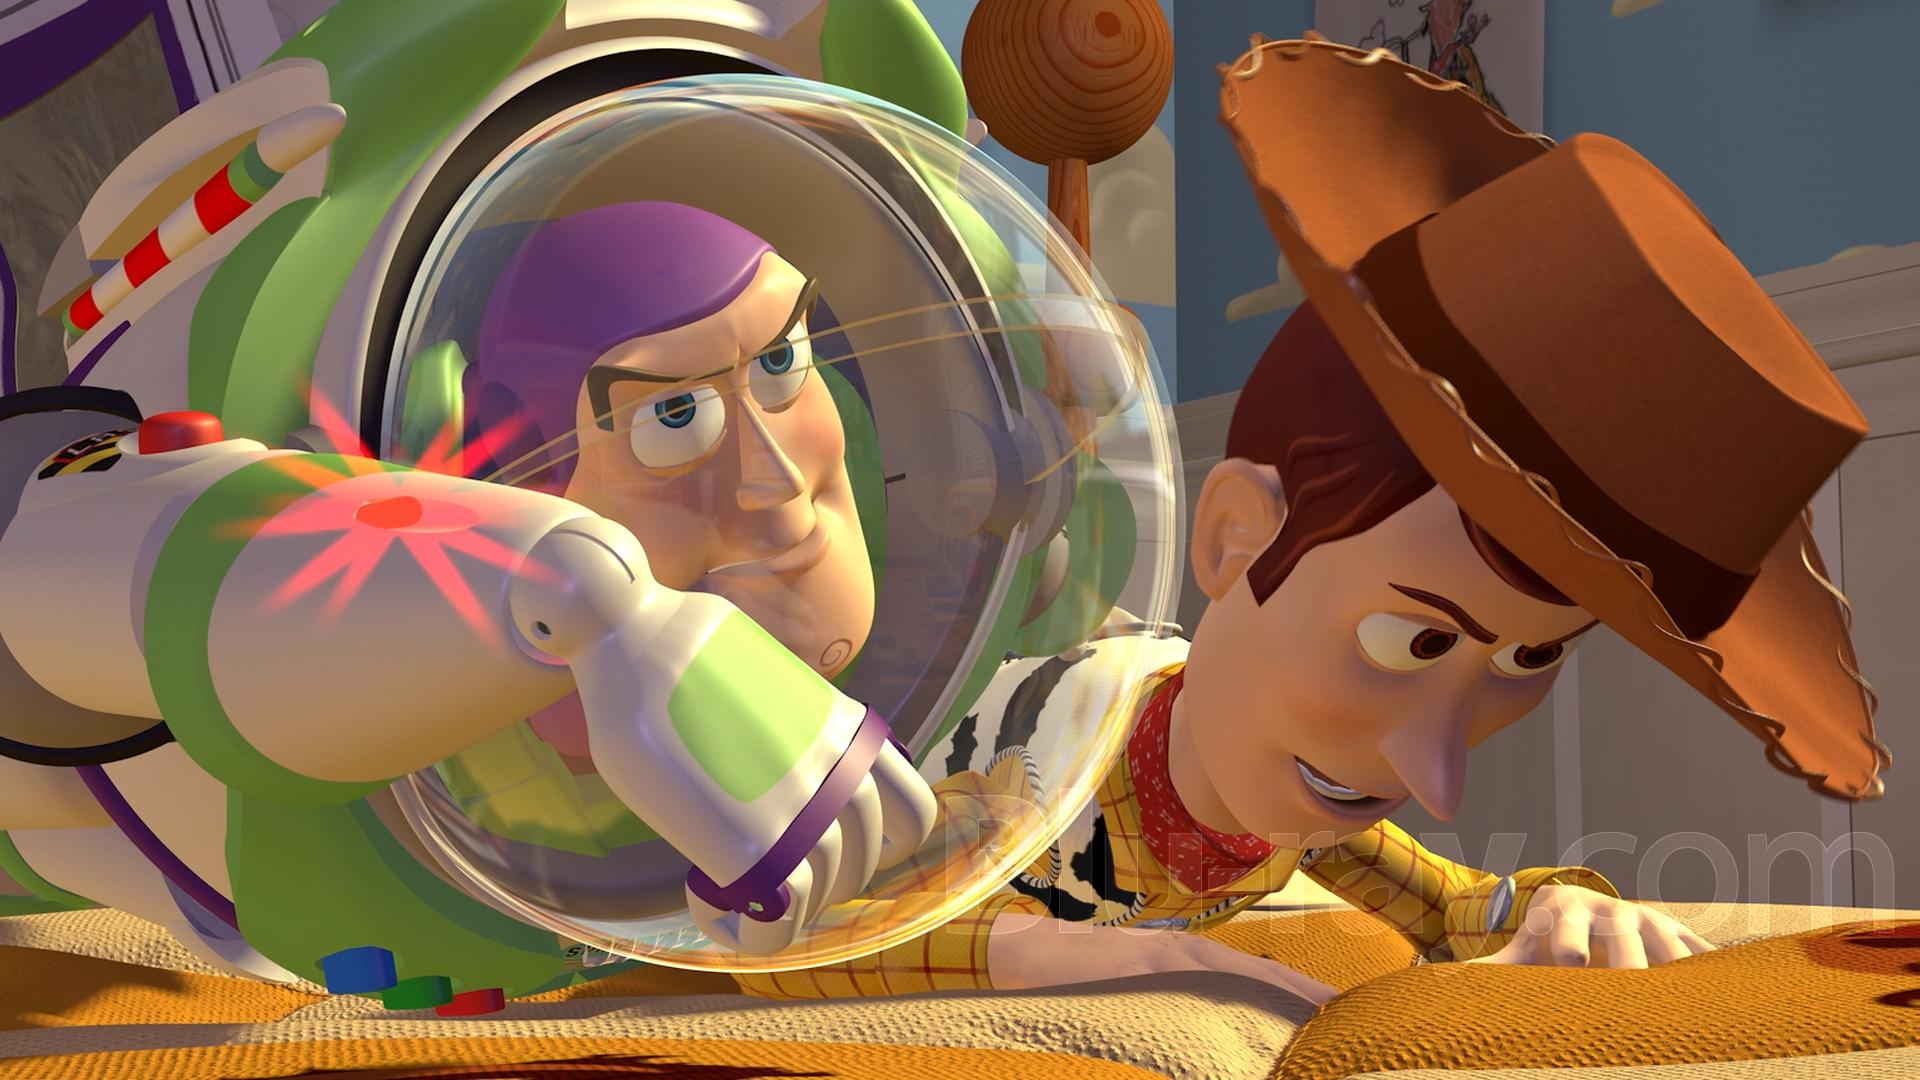 Disney toy story nude sex pic